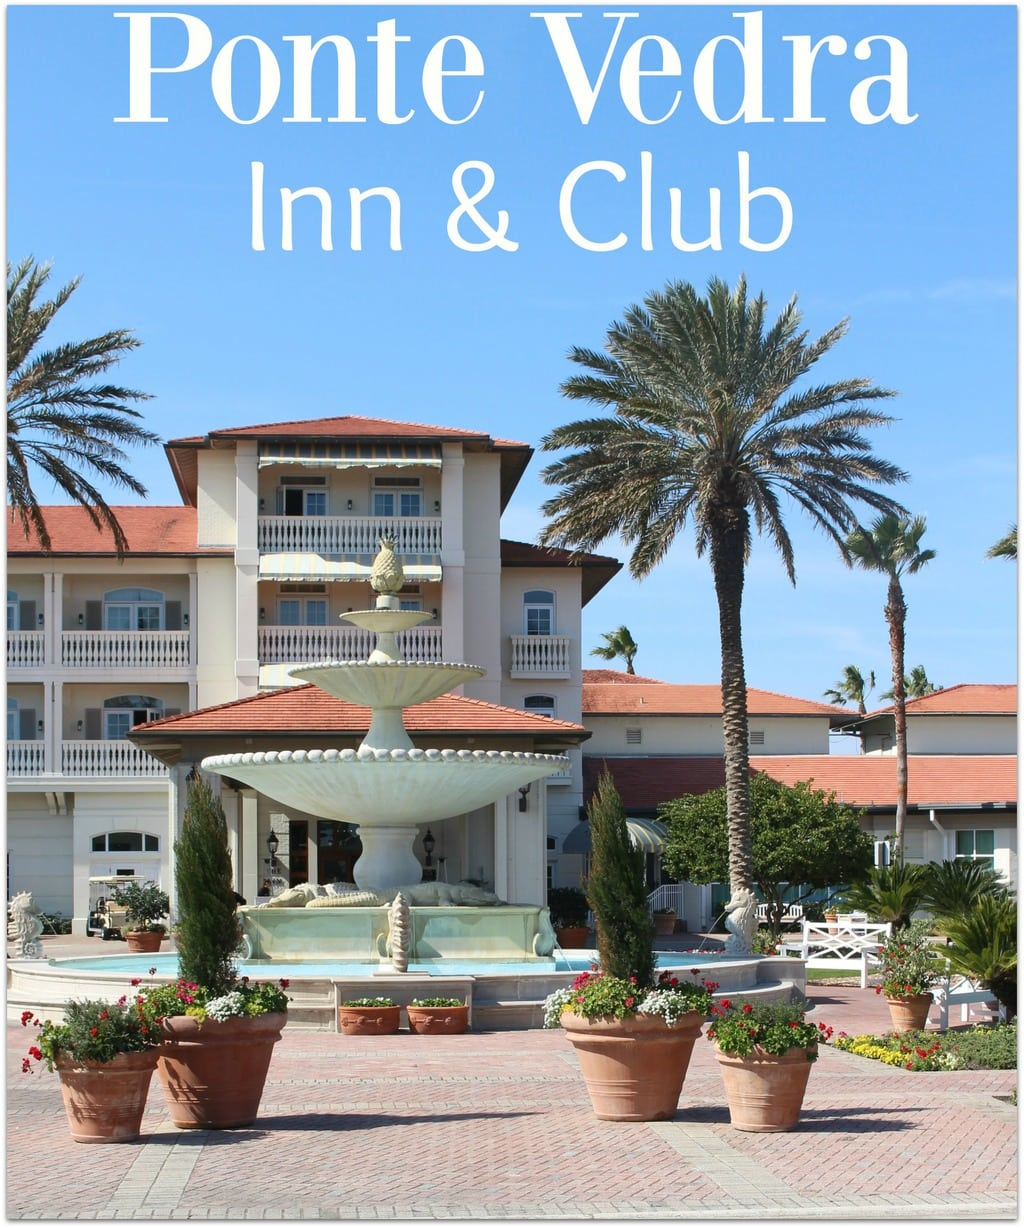 Looking for a luxurious hotel in Ponte Vedra? You've found it at the Ponte Vedra Inn & Club!